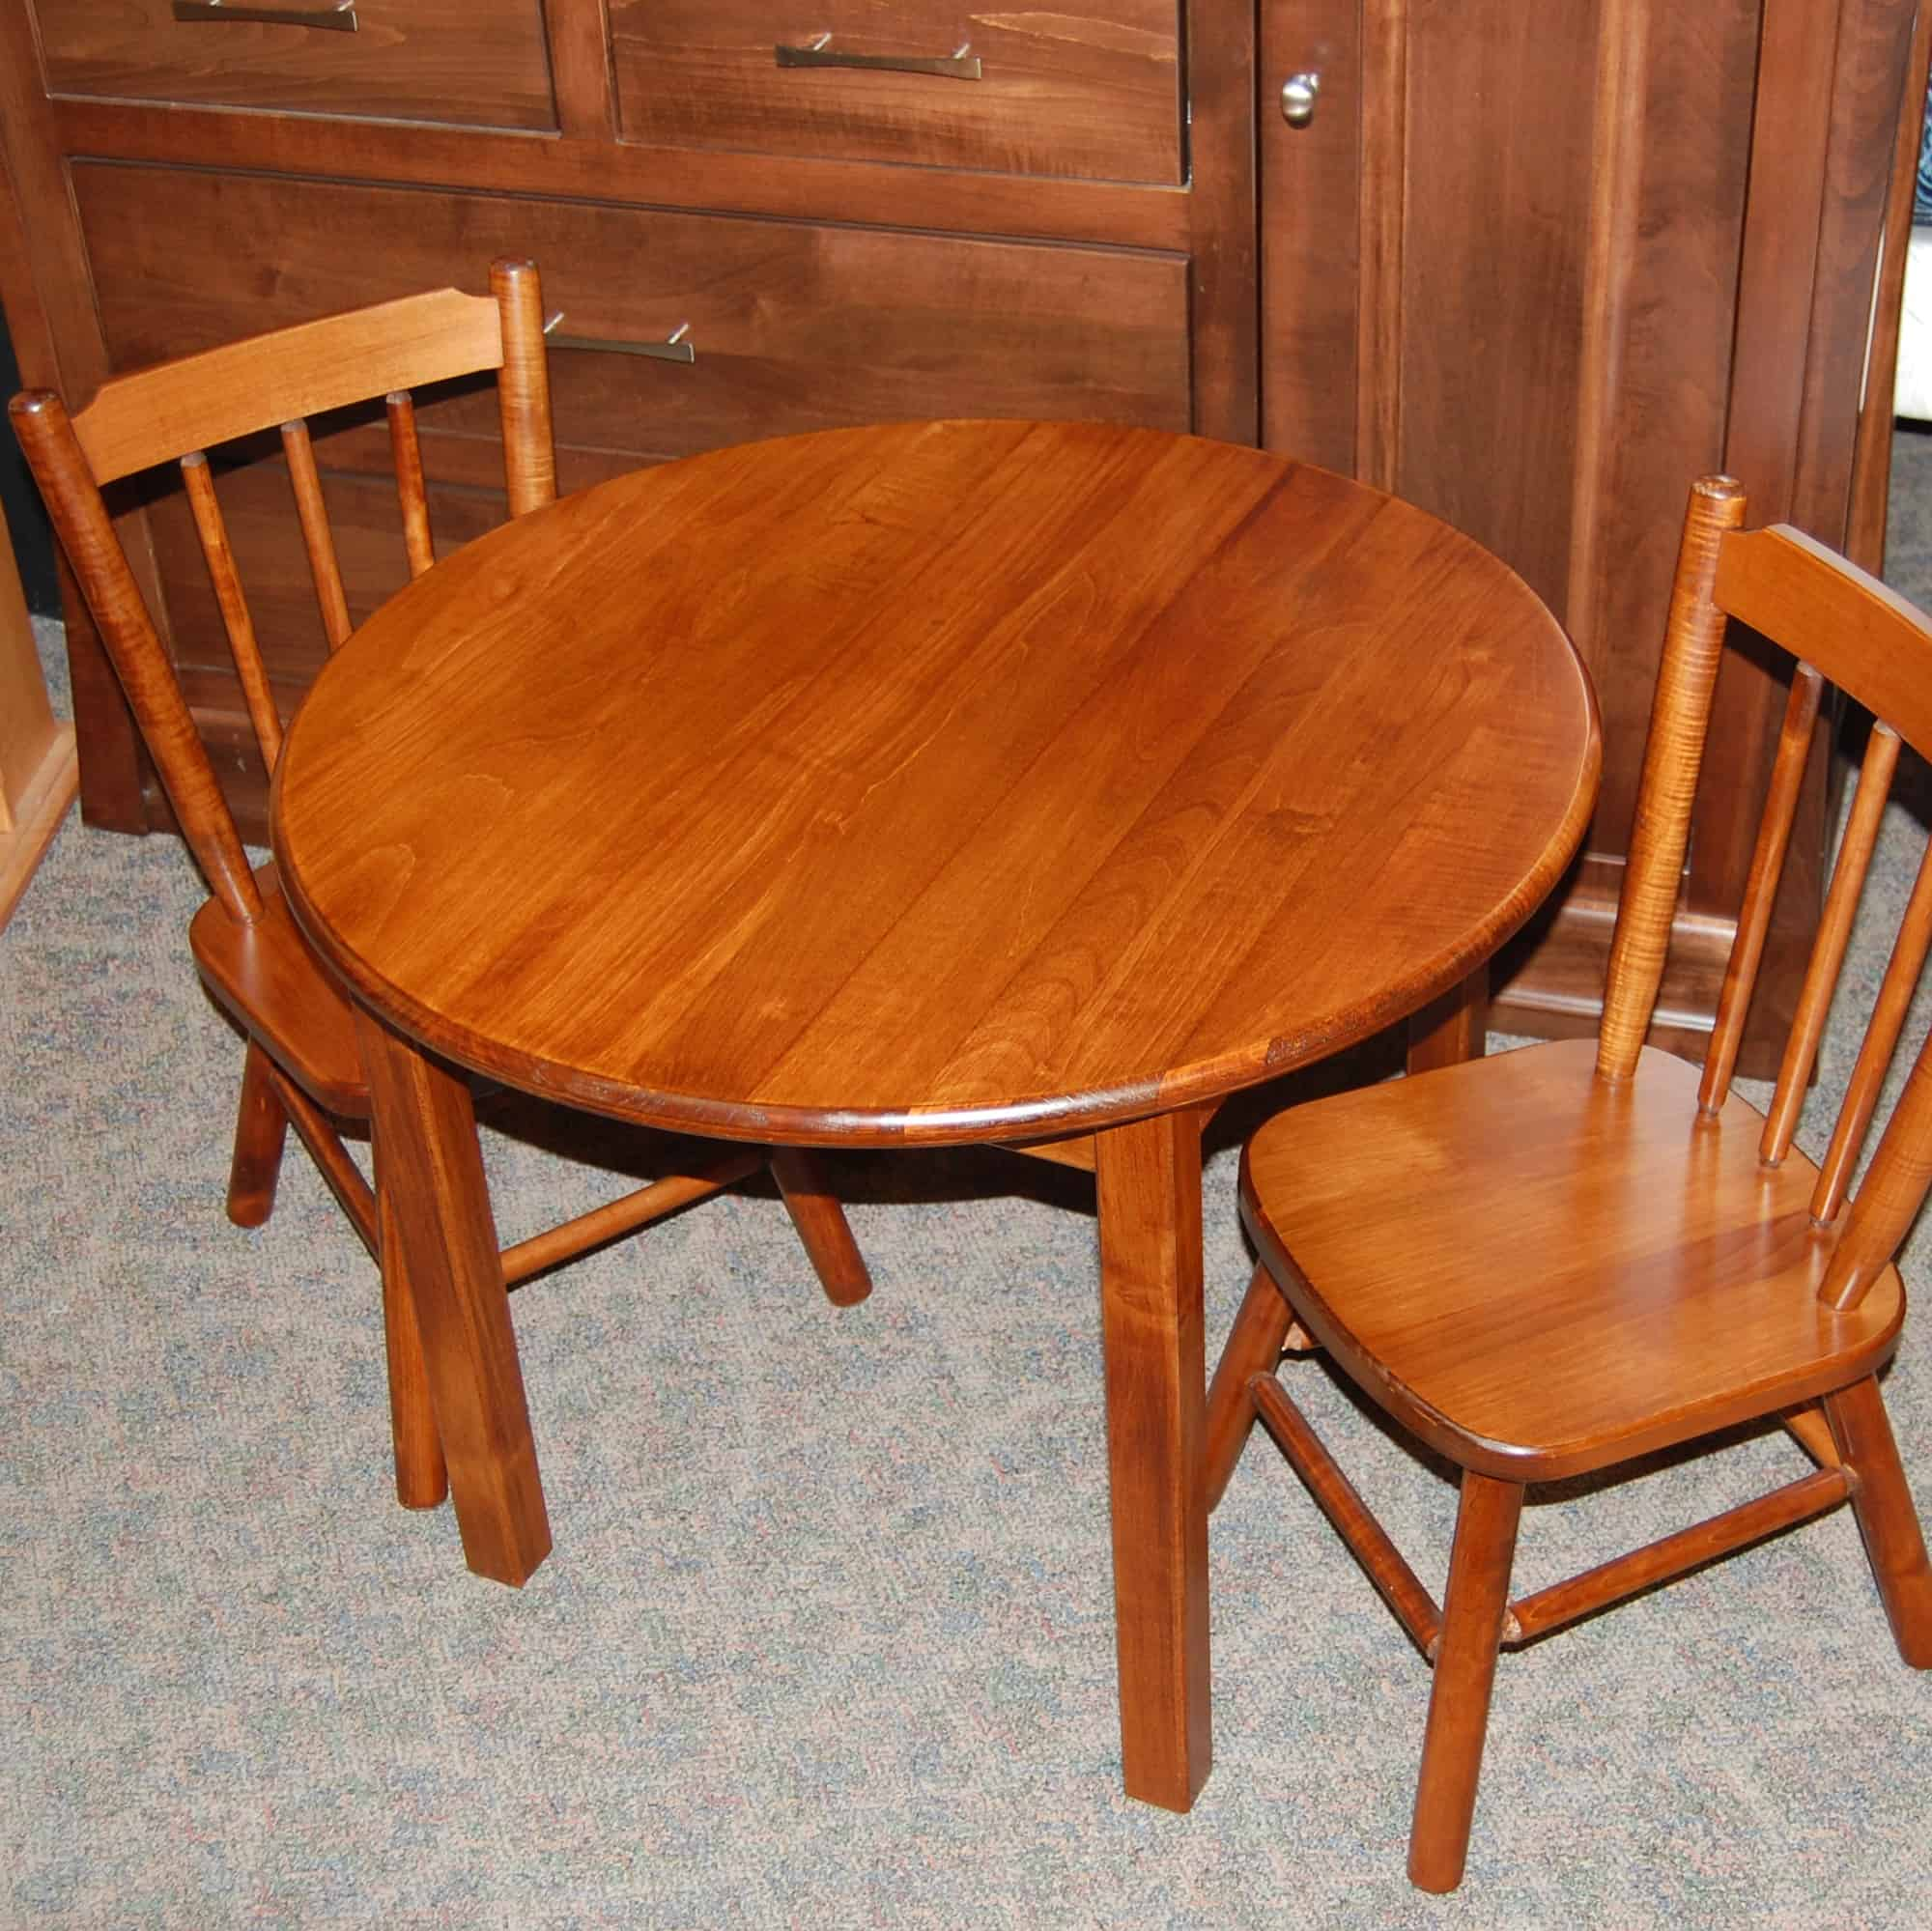 Children's Round Table and Chair set, Shown in Brown Maple ...